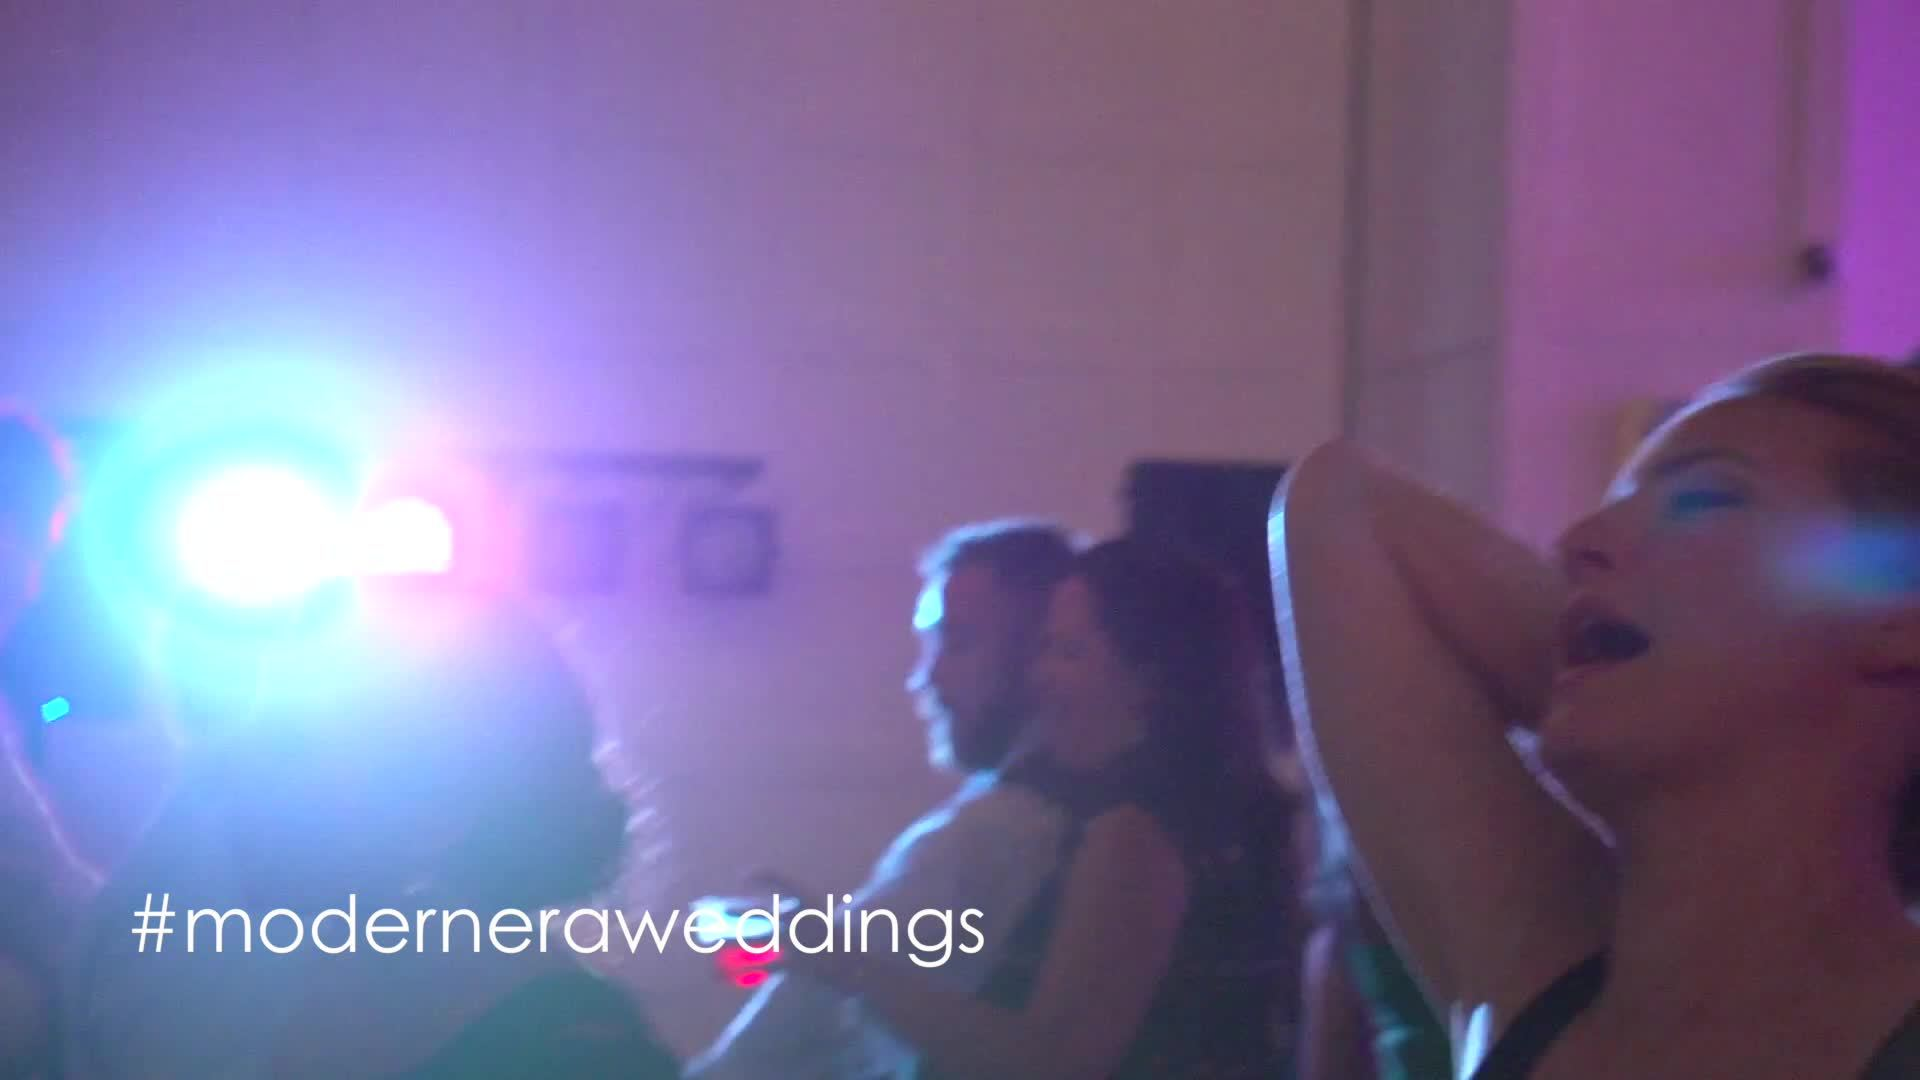 moderneraweddings, videography, wedding dj, Modern Era Weddings Reception Party GIFs